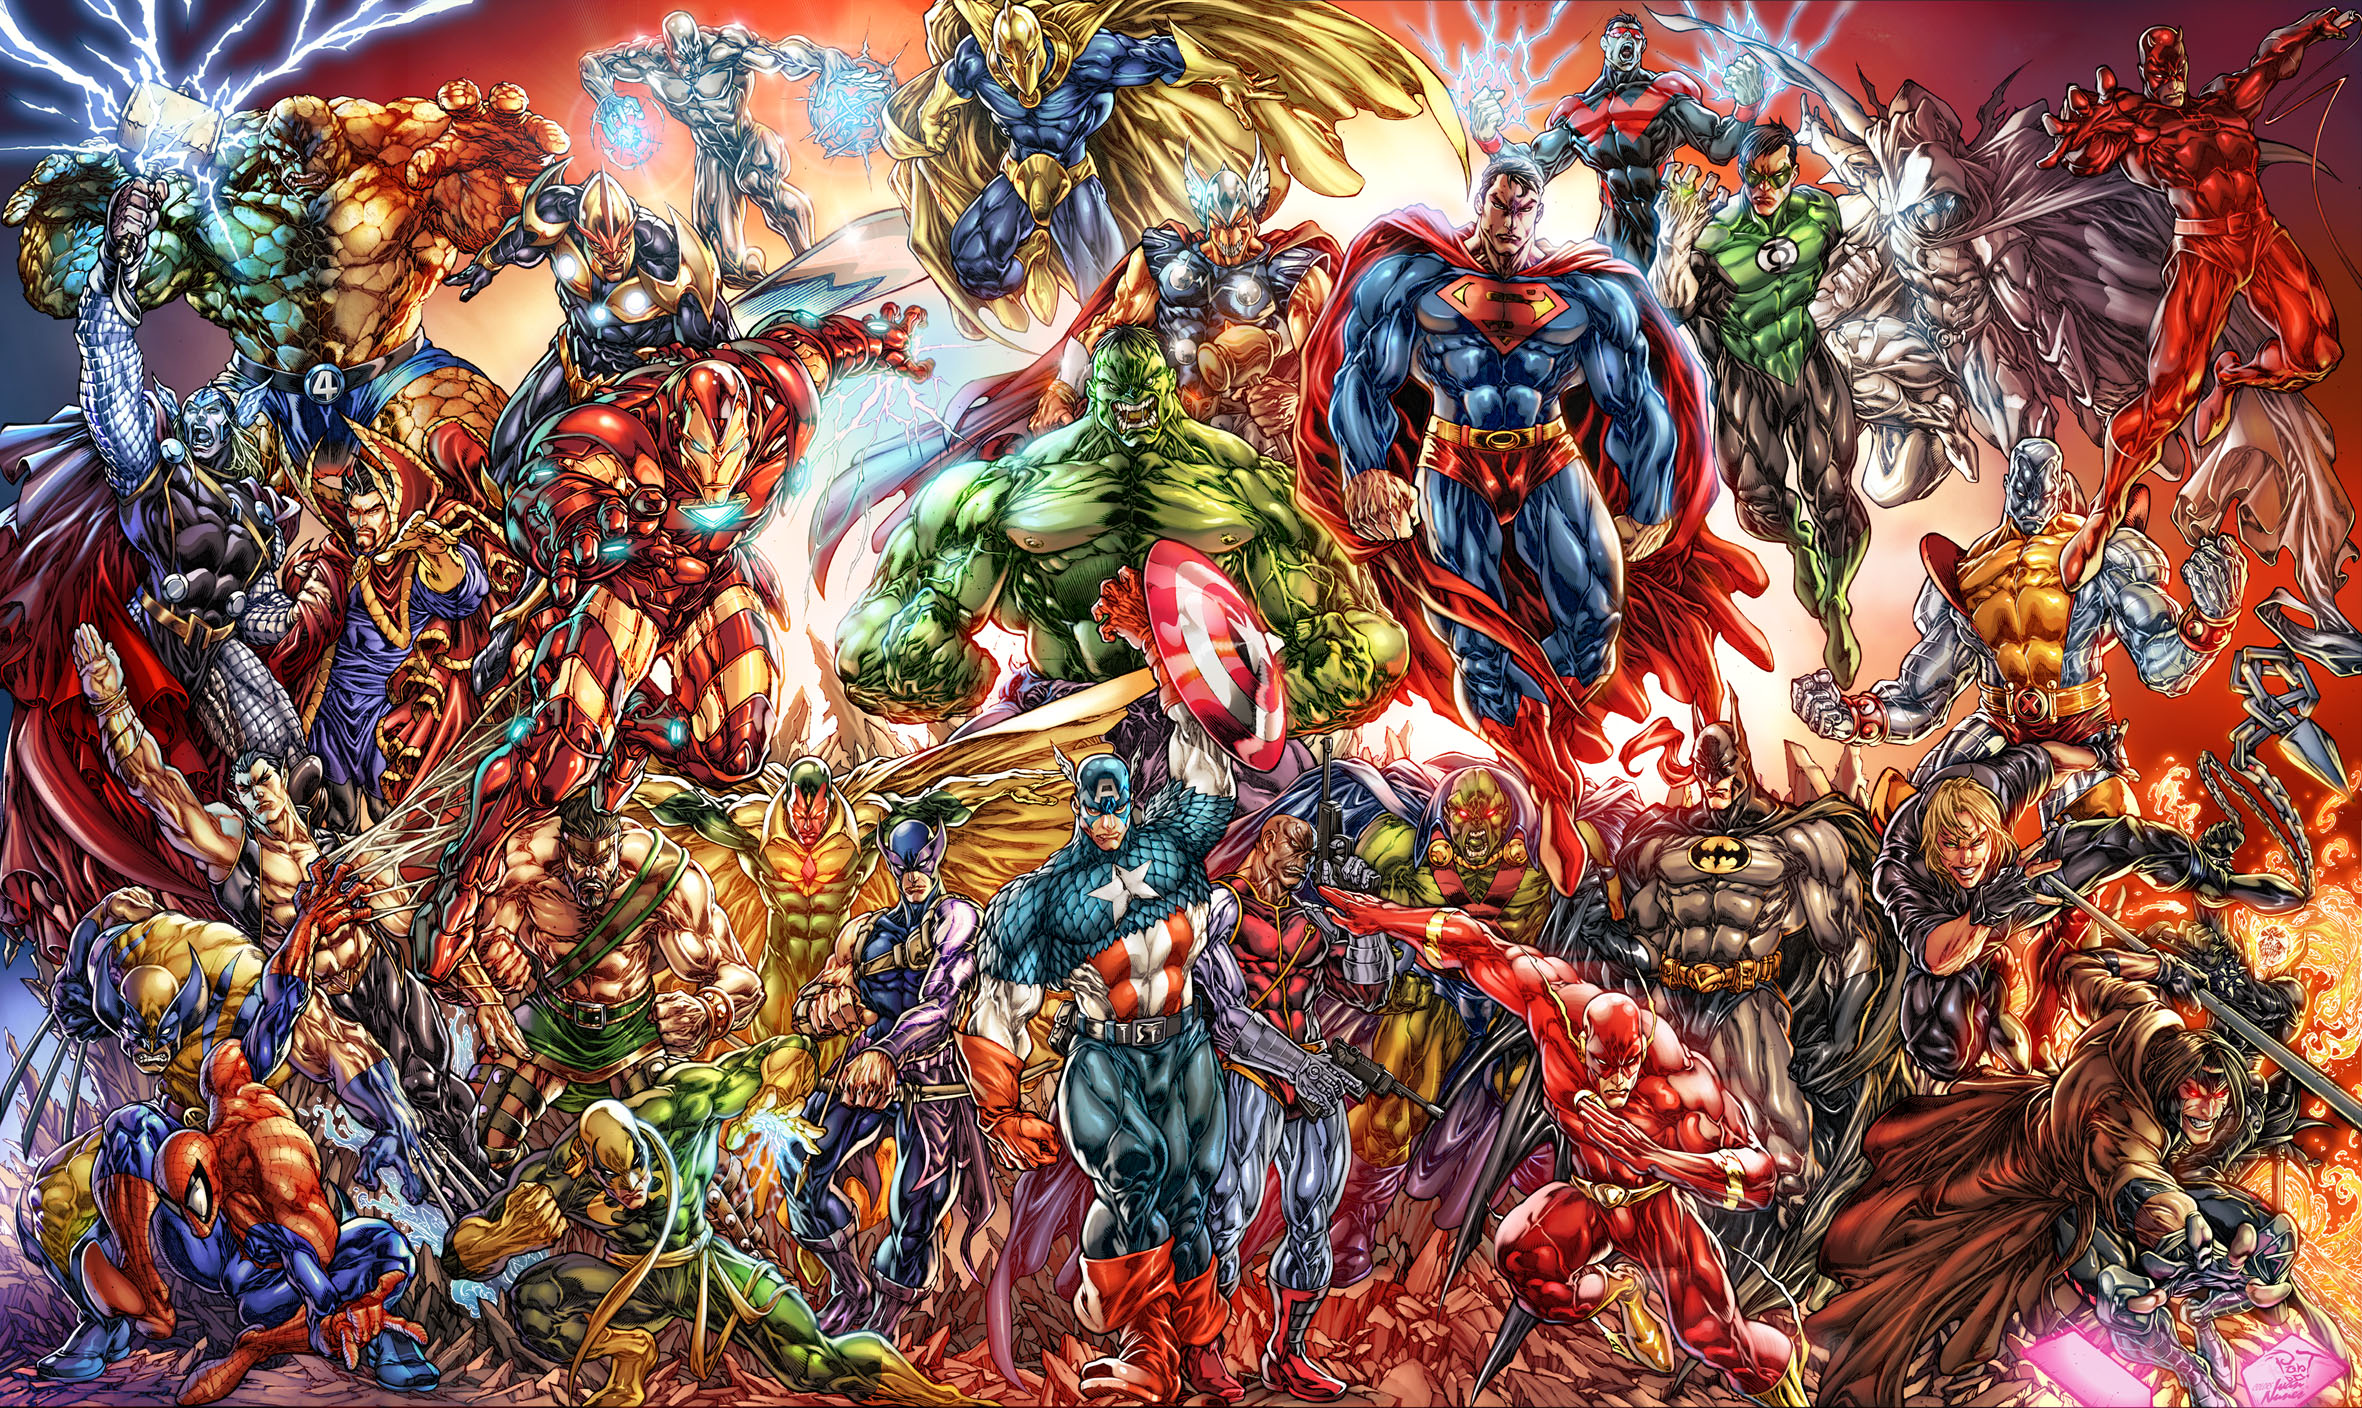 125 Marvel HD Wallpapers Backgrounds 2362x1408